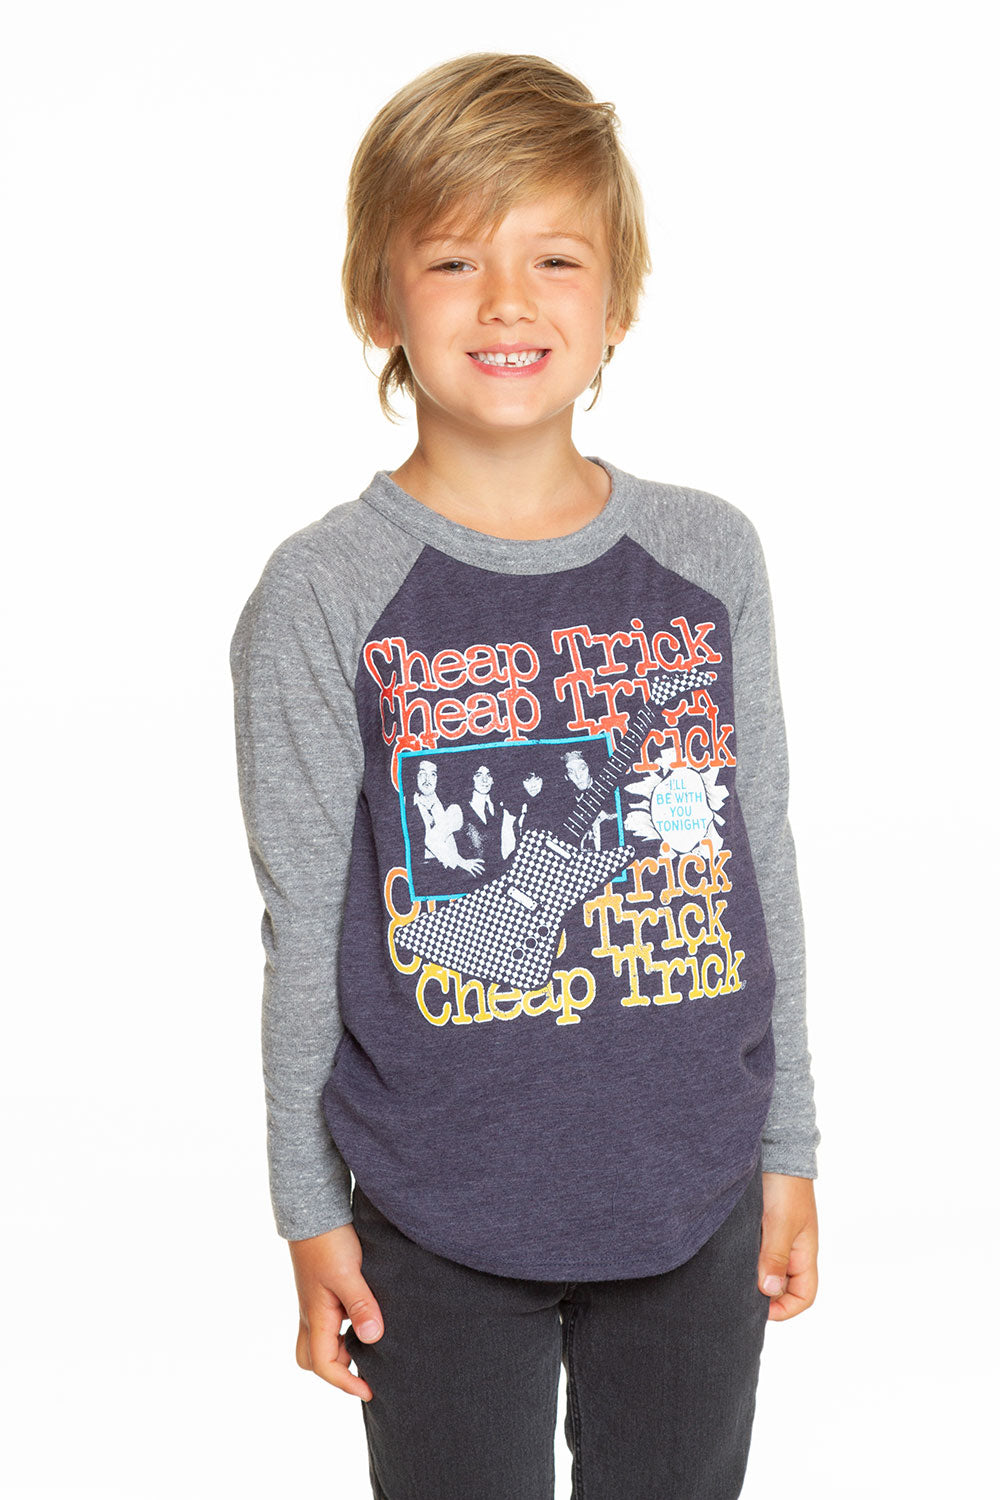 Cheap Trick - With You Tonight BOYS chaserbrand4.myshopify.com